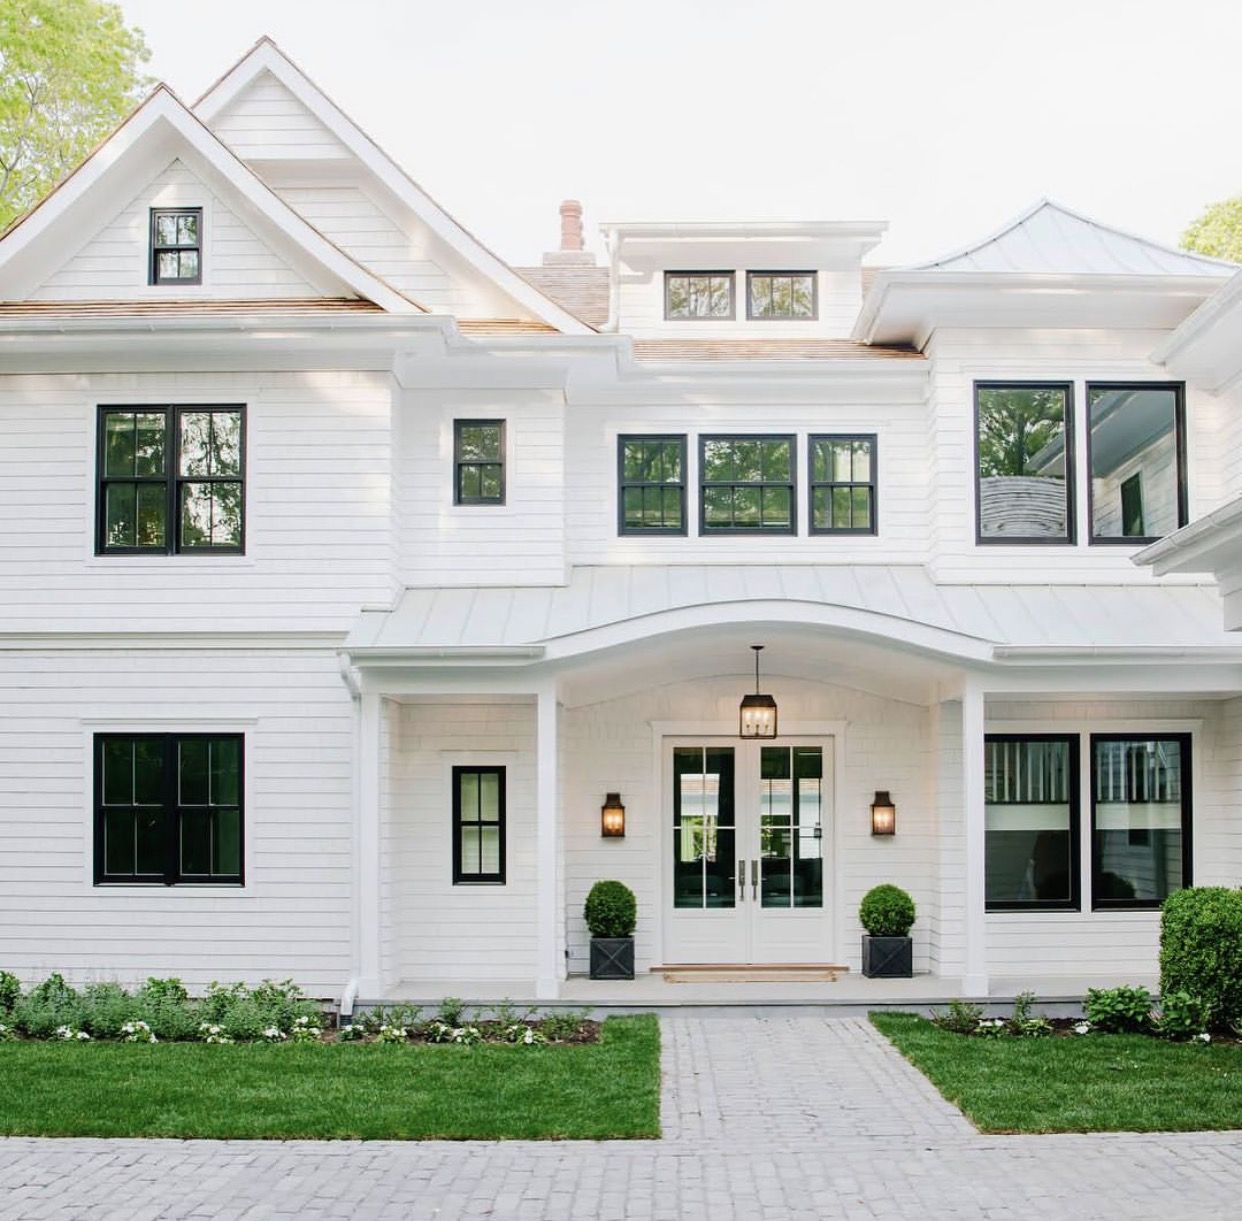 Exterior paint colors you want a fresh new look for exterior of your home get inspired for your next exterior painting project with our color gallery